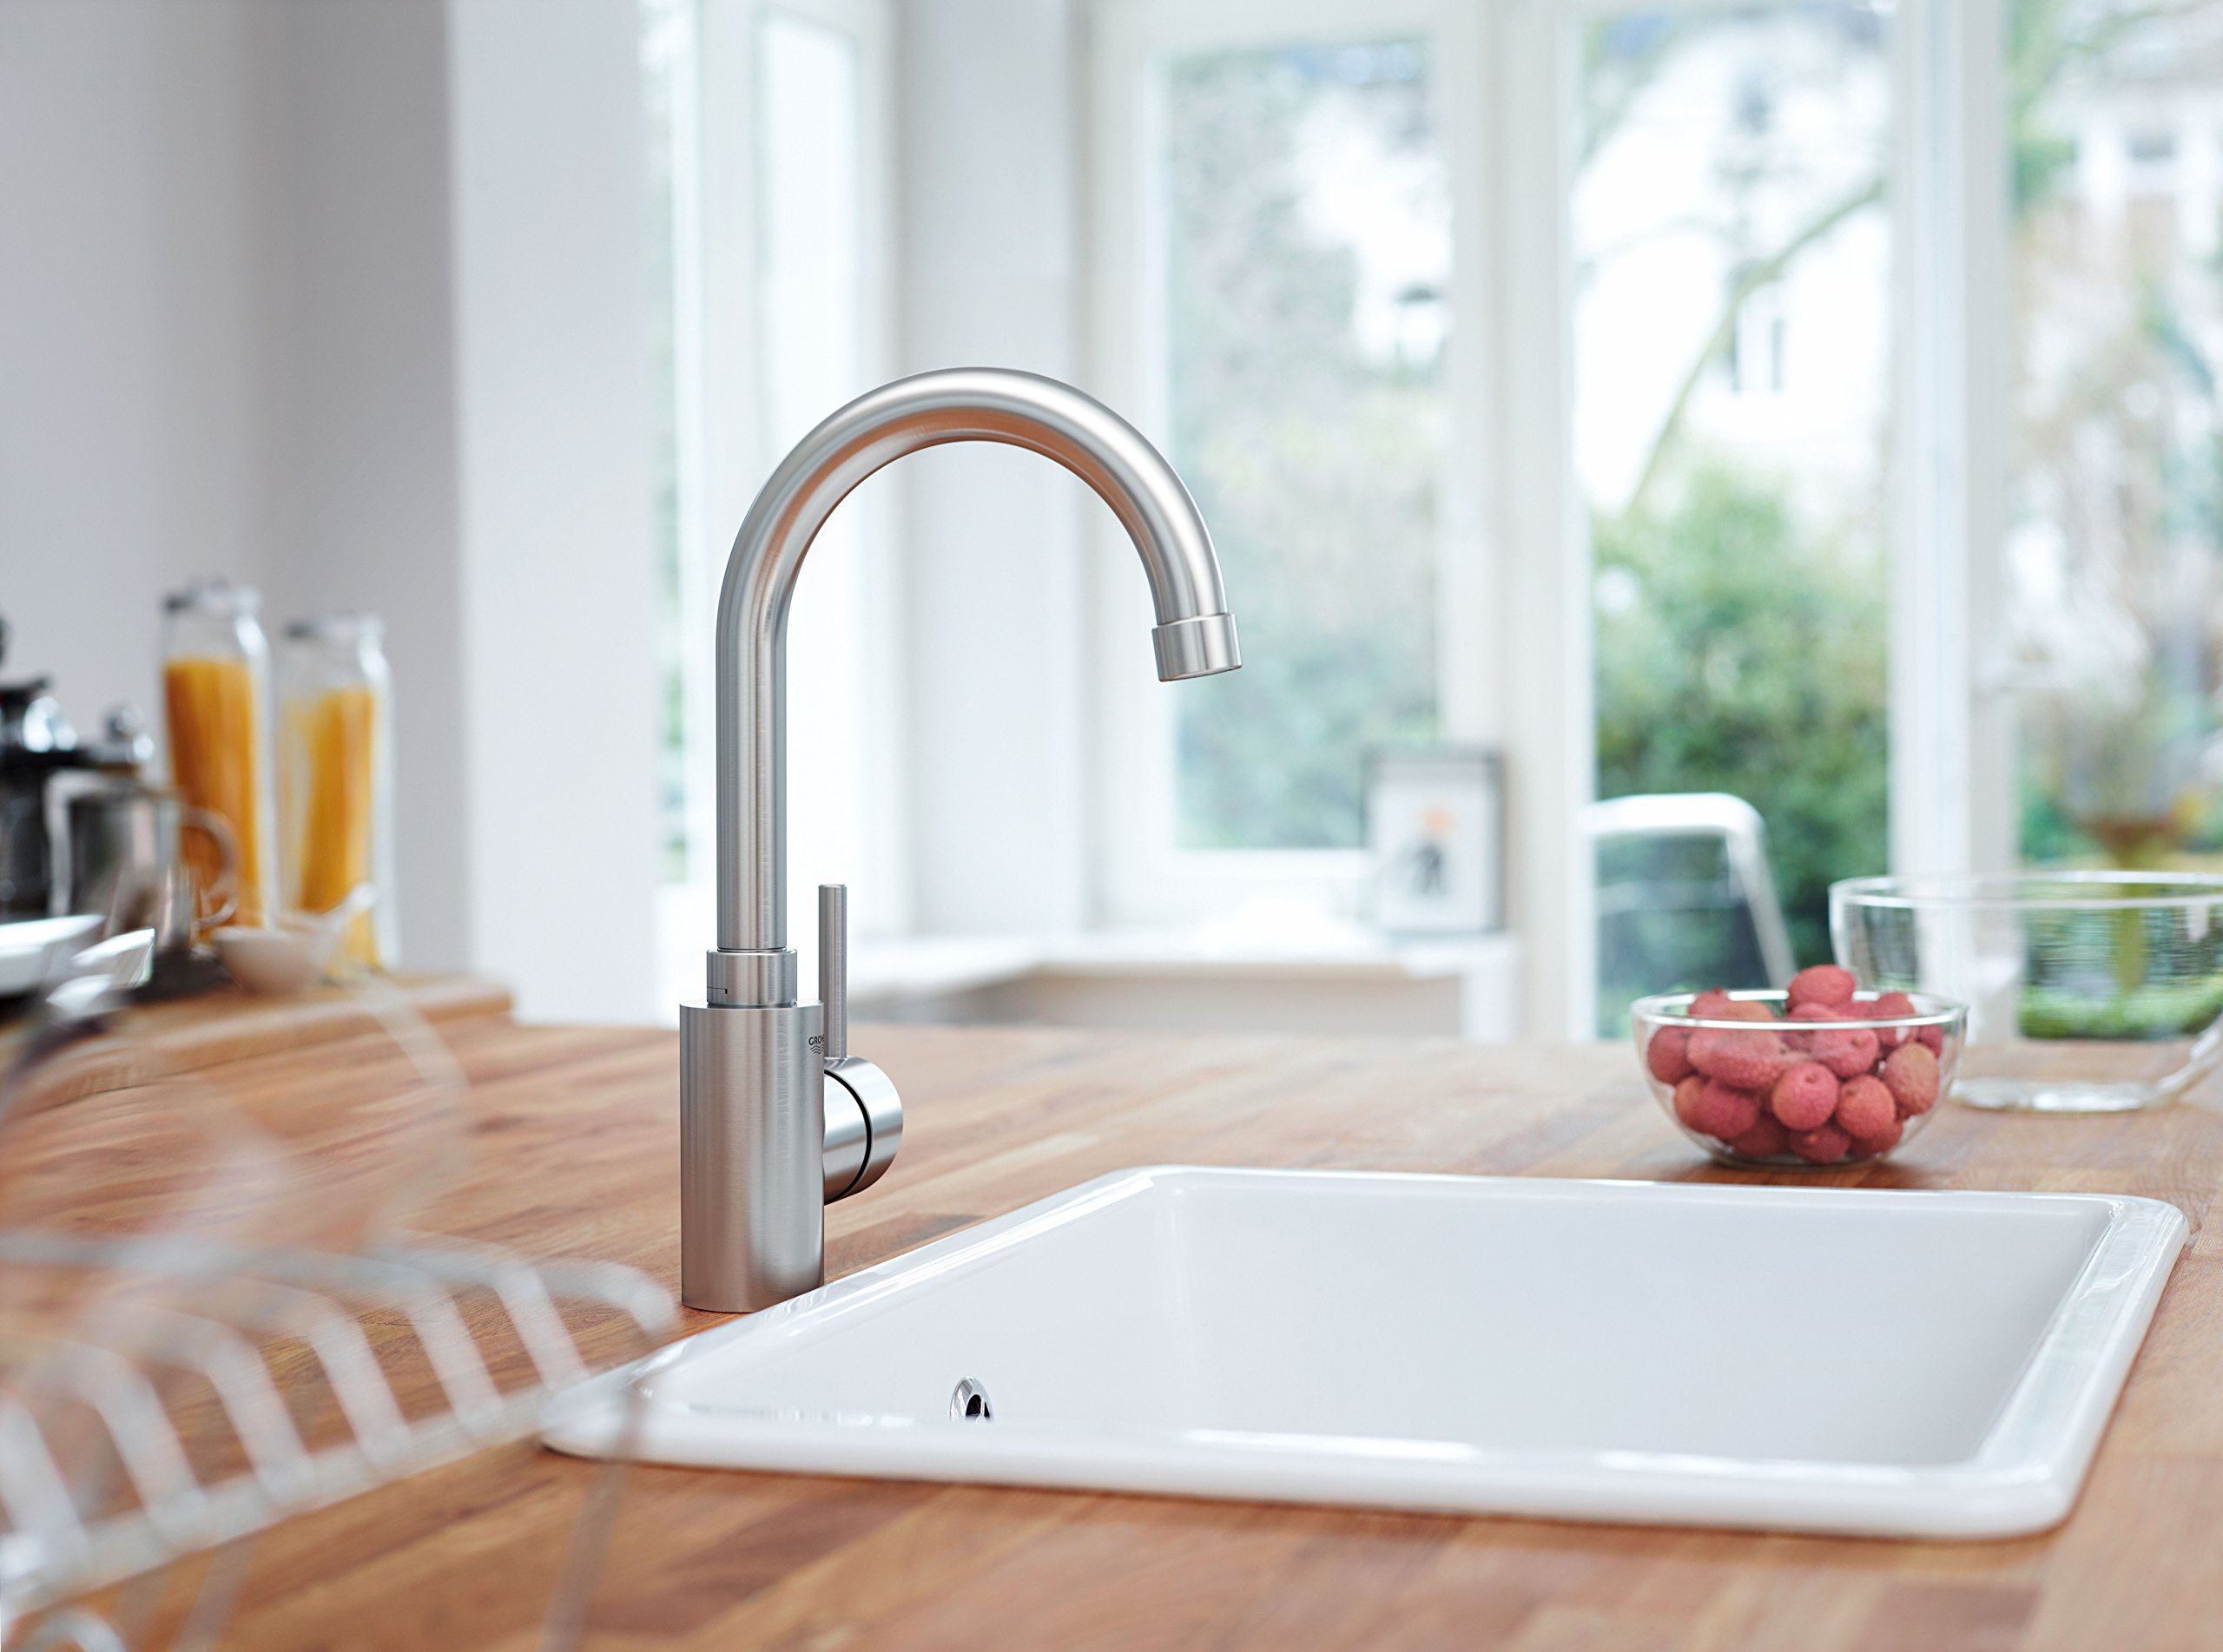 GROHE 31518DC0 31518 Concetto Bar Faucet by GROHE (Image #3)